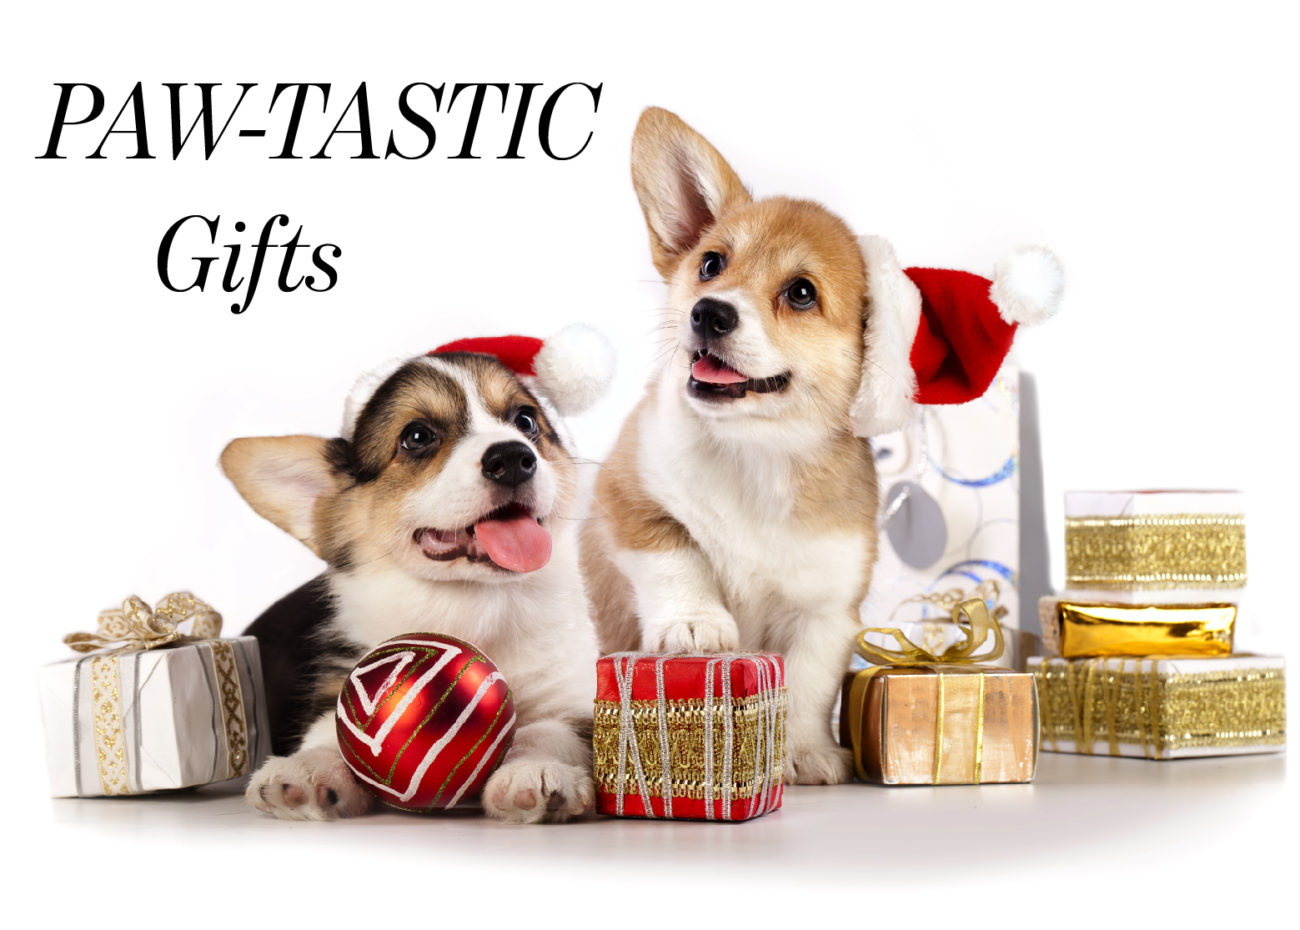 ICONIC LIFE Christmas gifts for pets